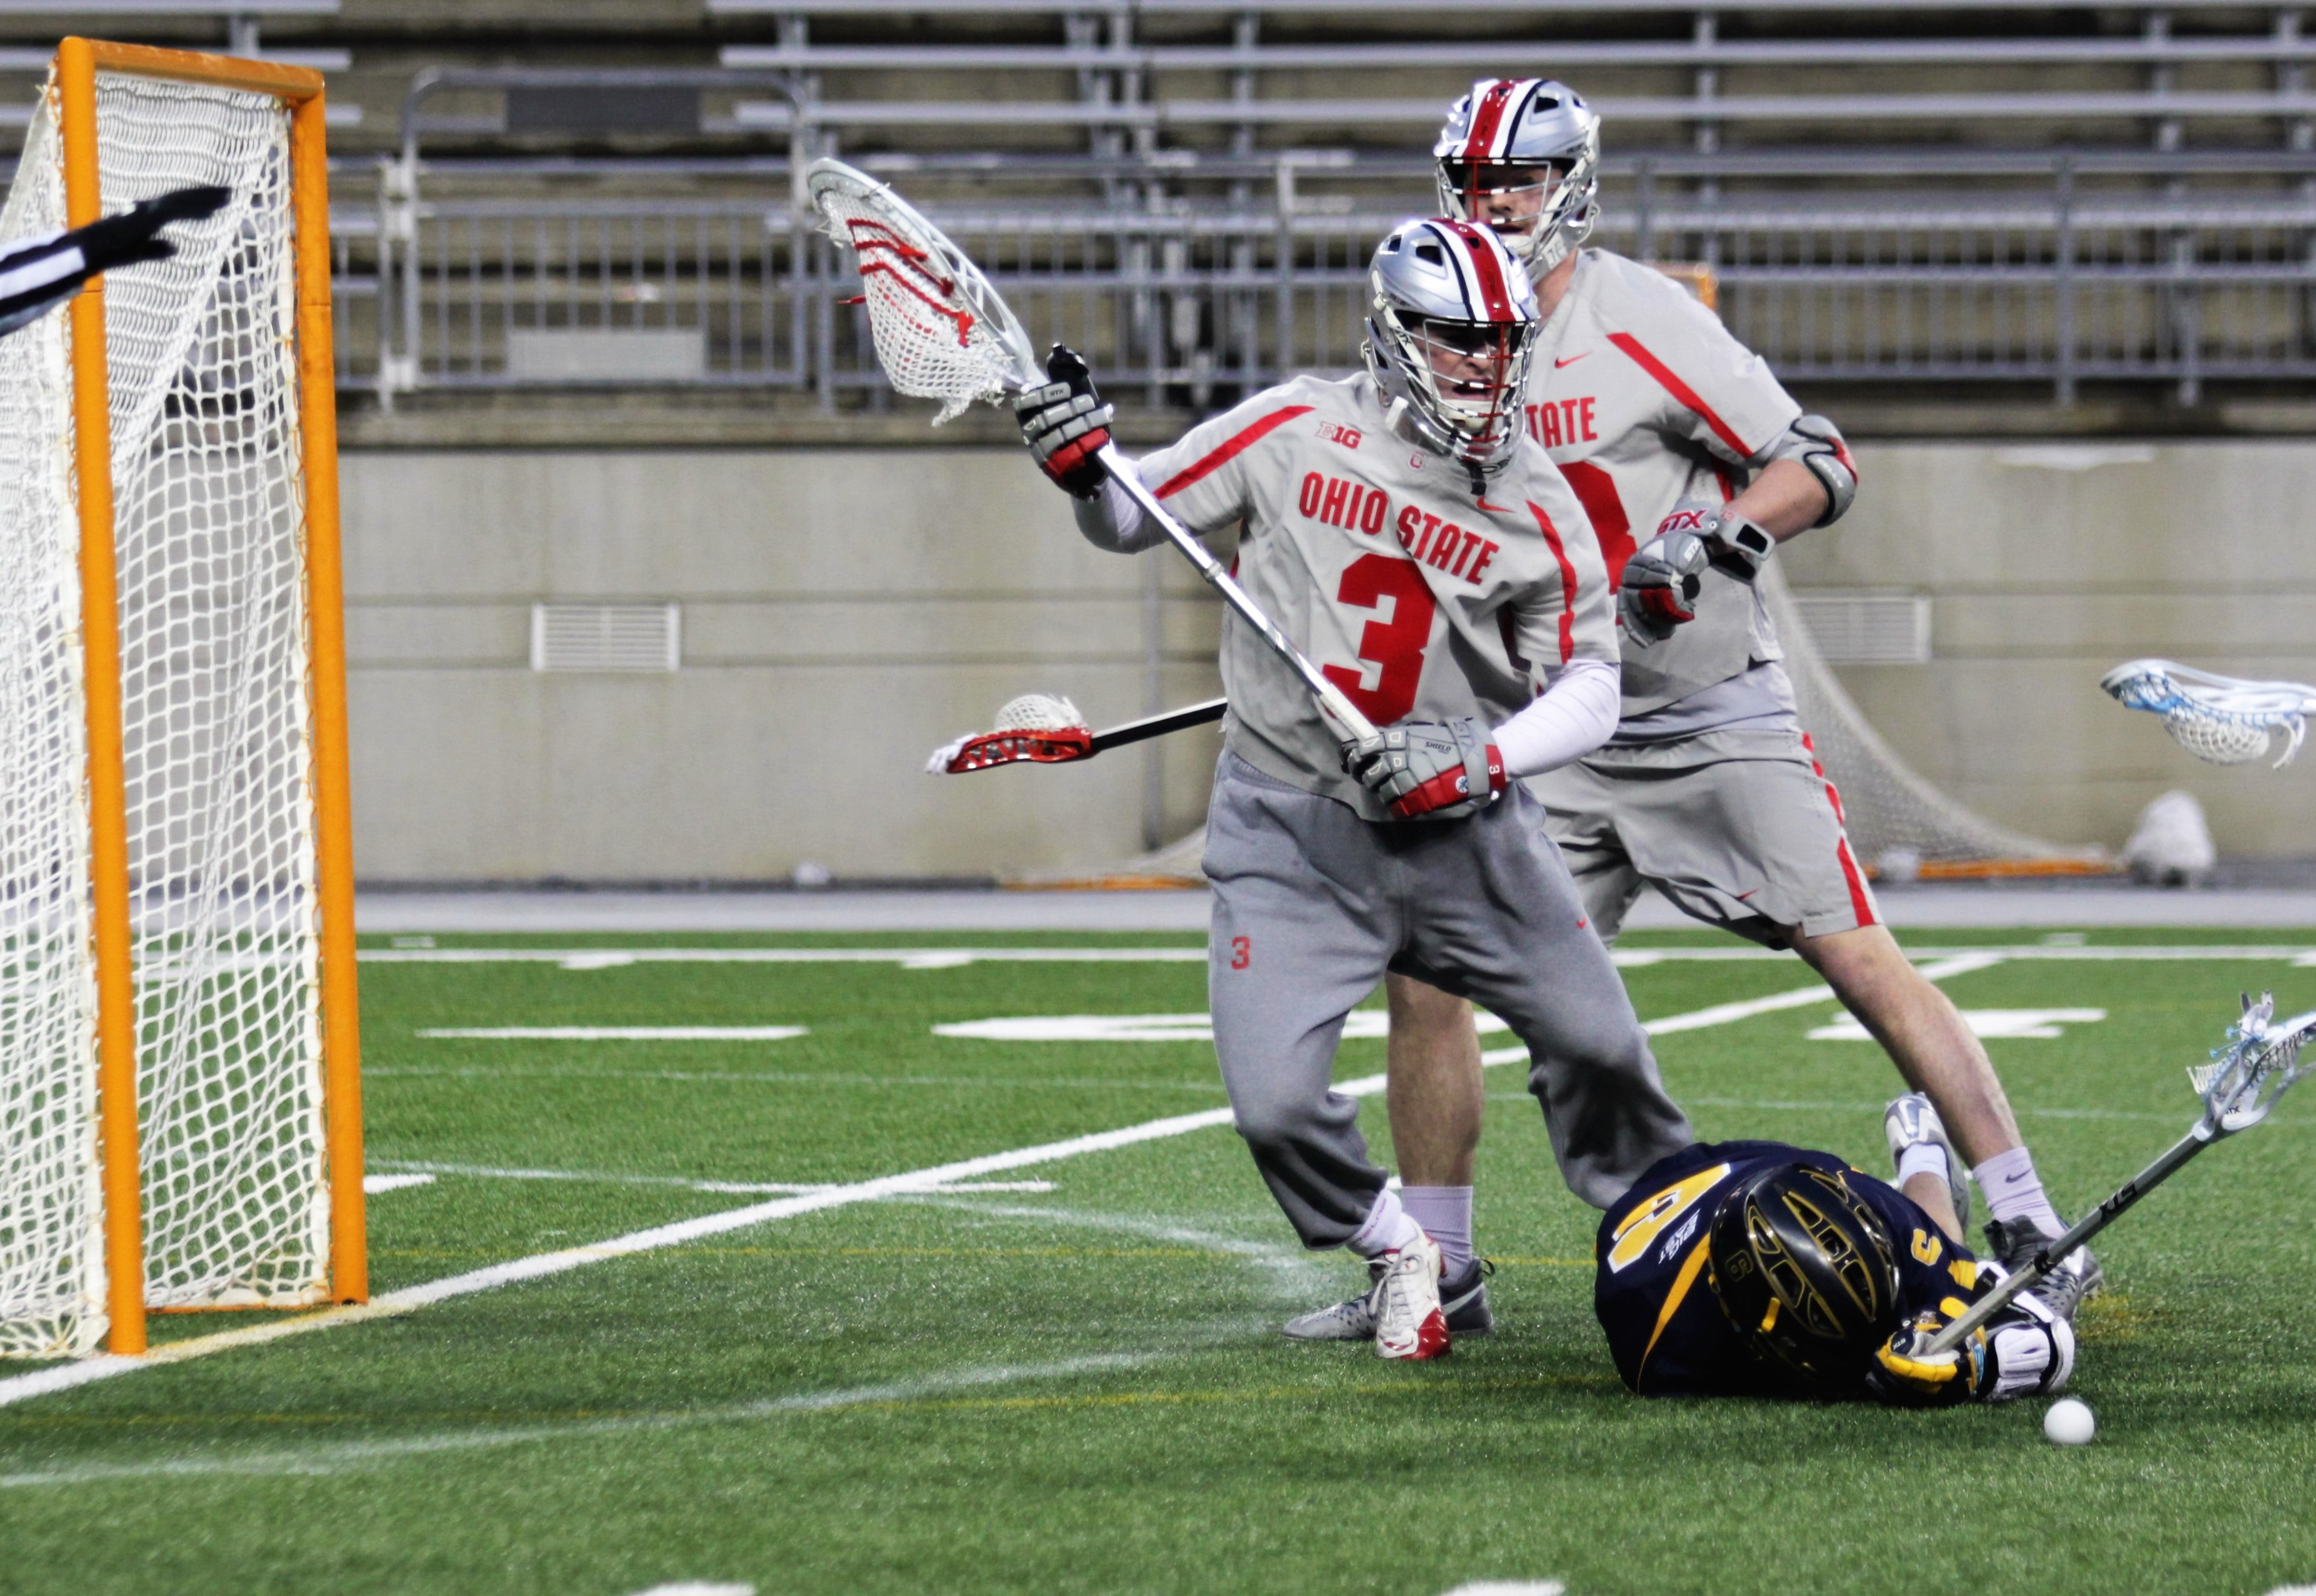 OSU redshirt junior goalie Tom Carey (3) tries to recover a ground ball during a game against Marquette on March 4 at Ohio Stadium. Credit: Jenna Leinasars   Multimedia Editor